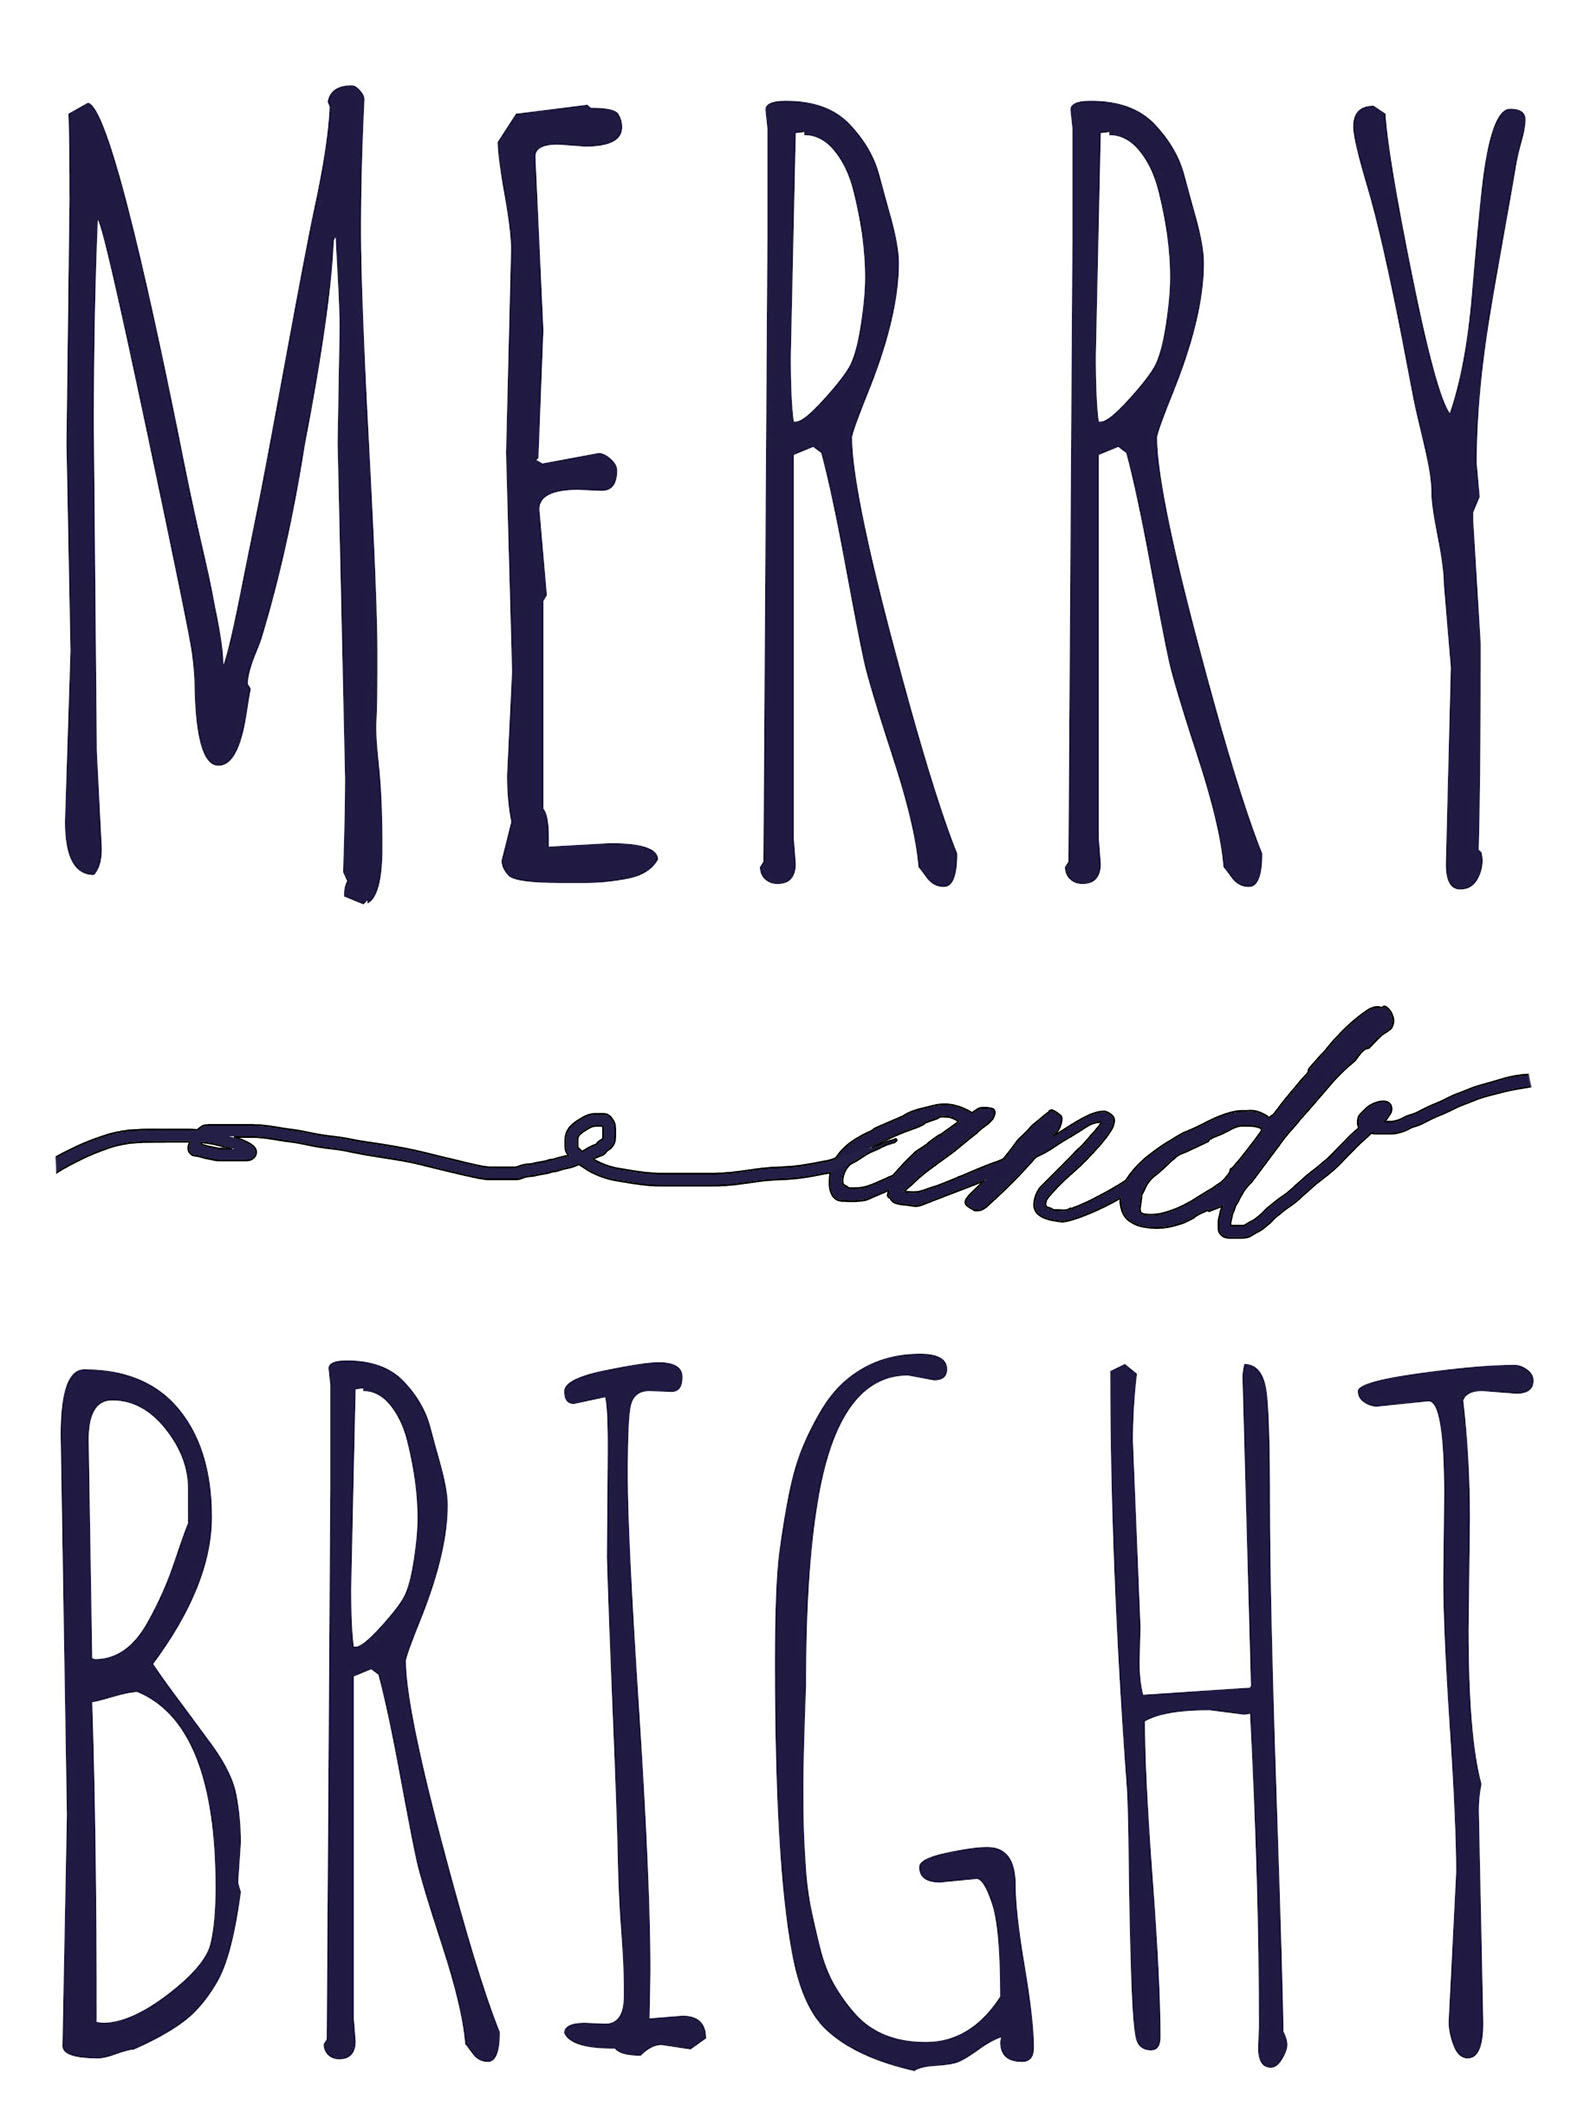 merry and bright printable template fantastically merry and bright printable template